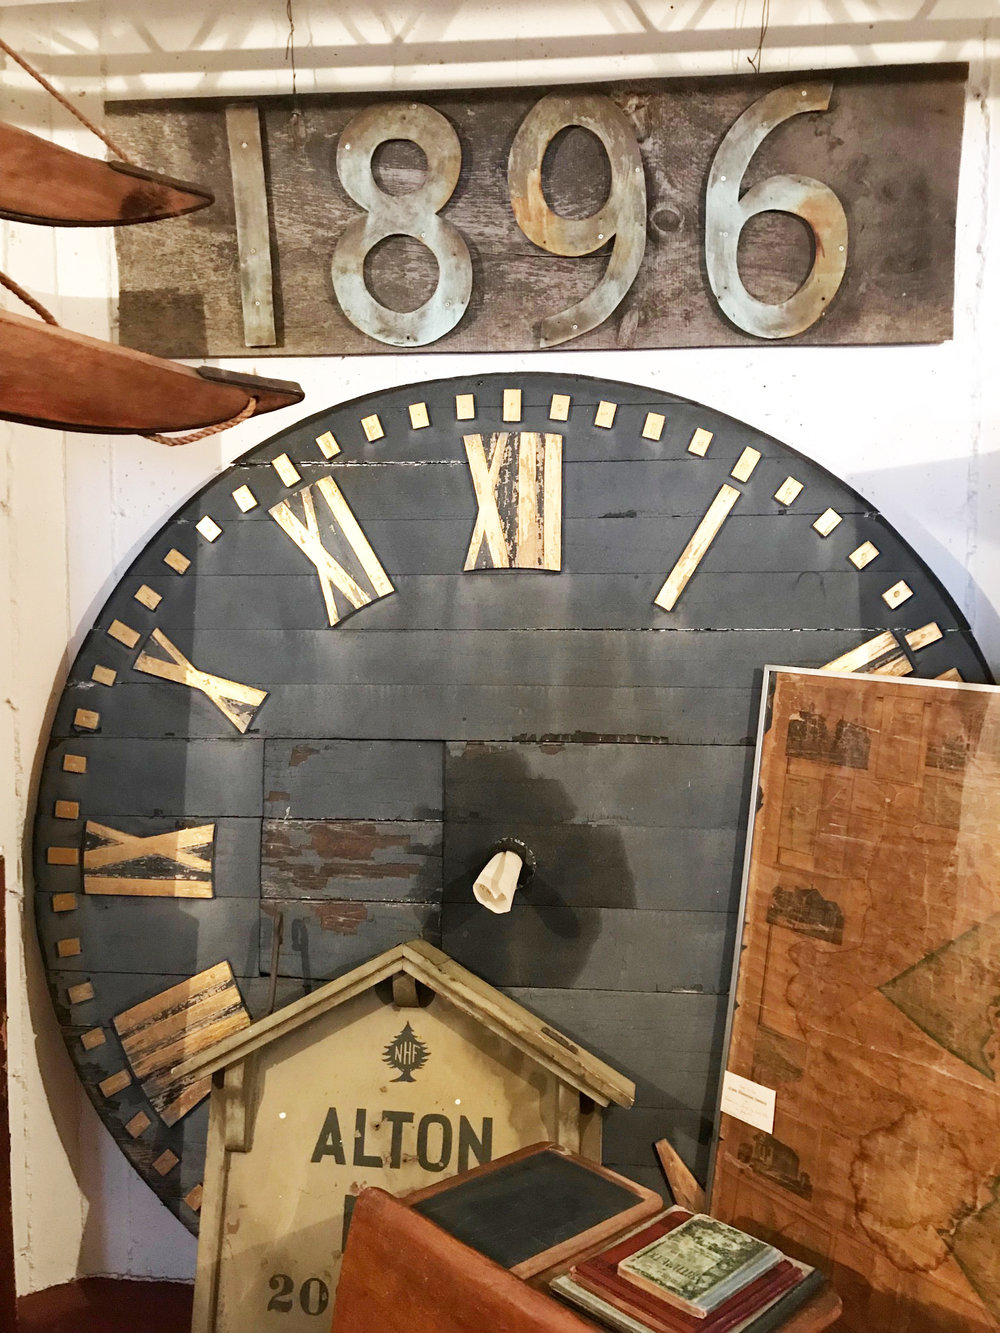 The clock and other Alton items from the past.